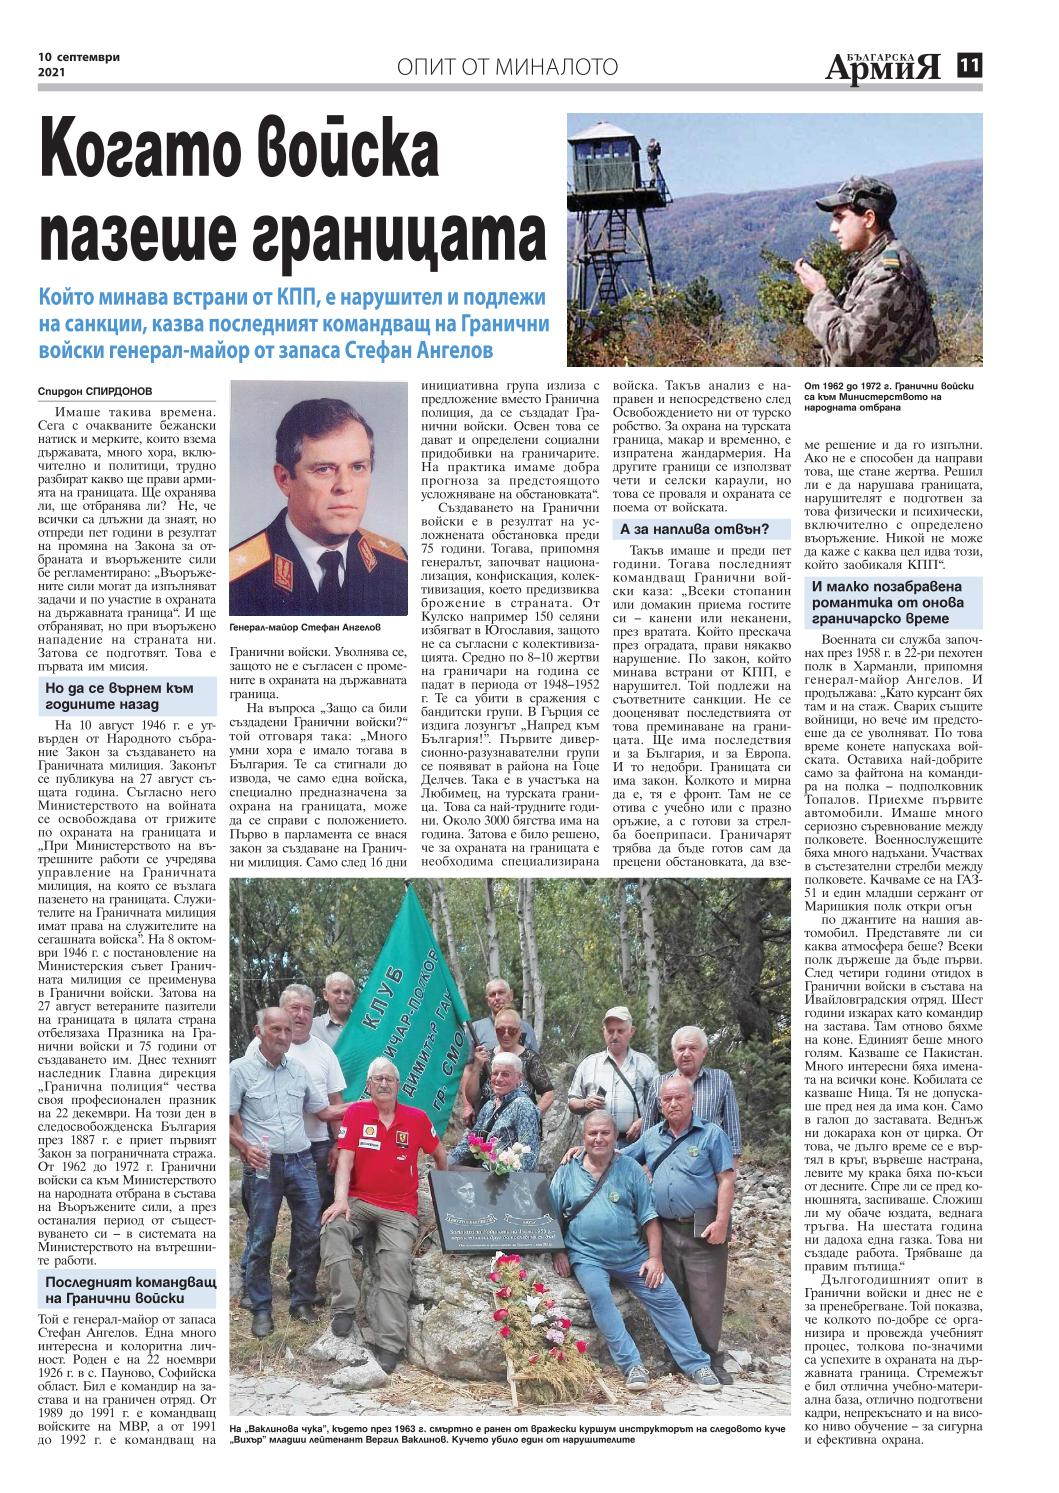 https://armymedia.bg/wp-content/uploads/2021/09/11.page1_-1.jpg